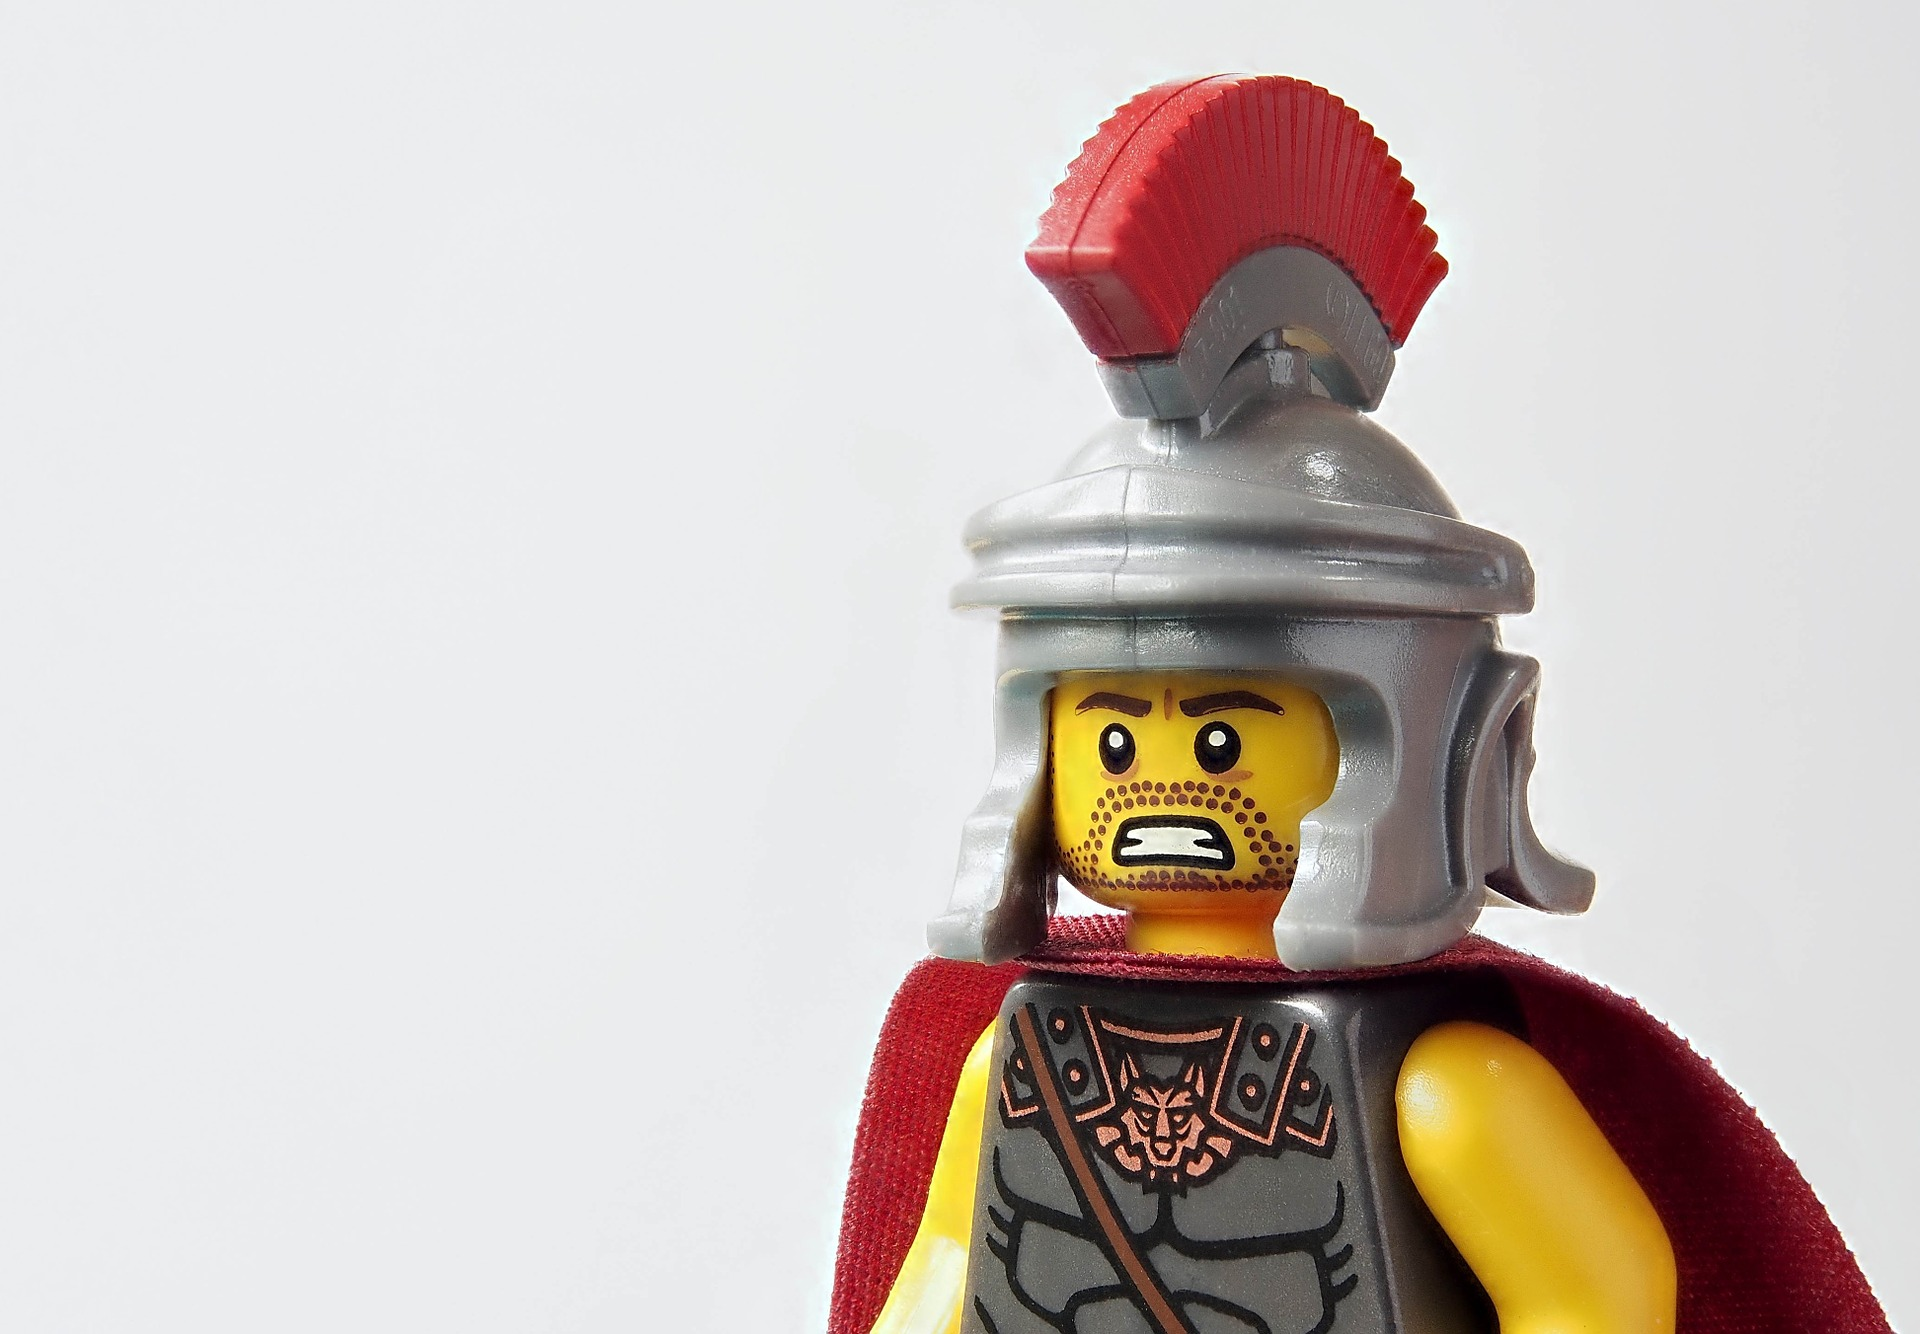 lego toy representing child in armor